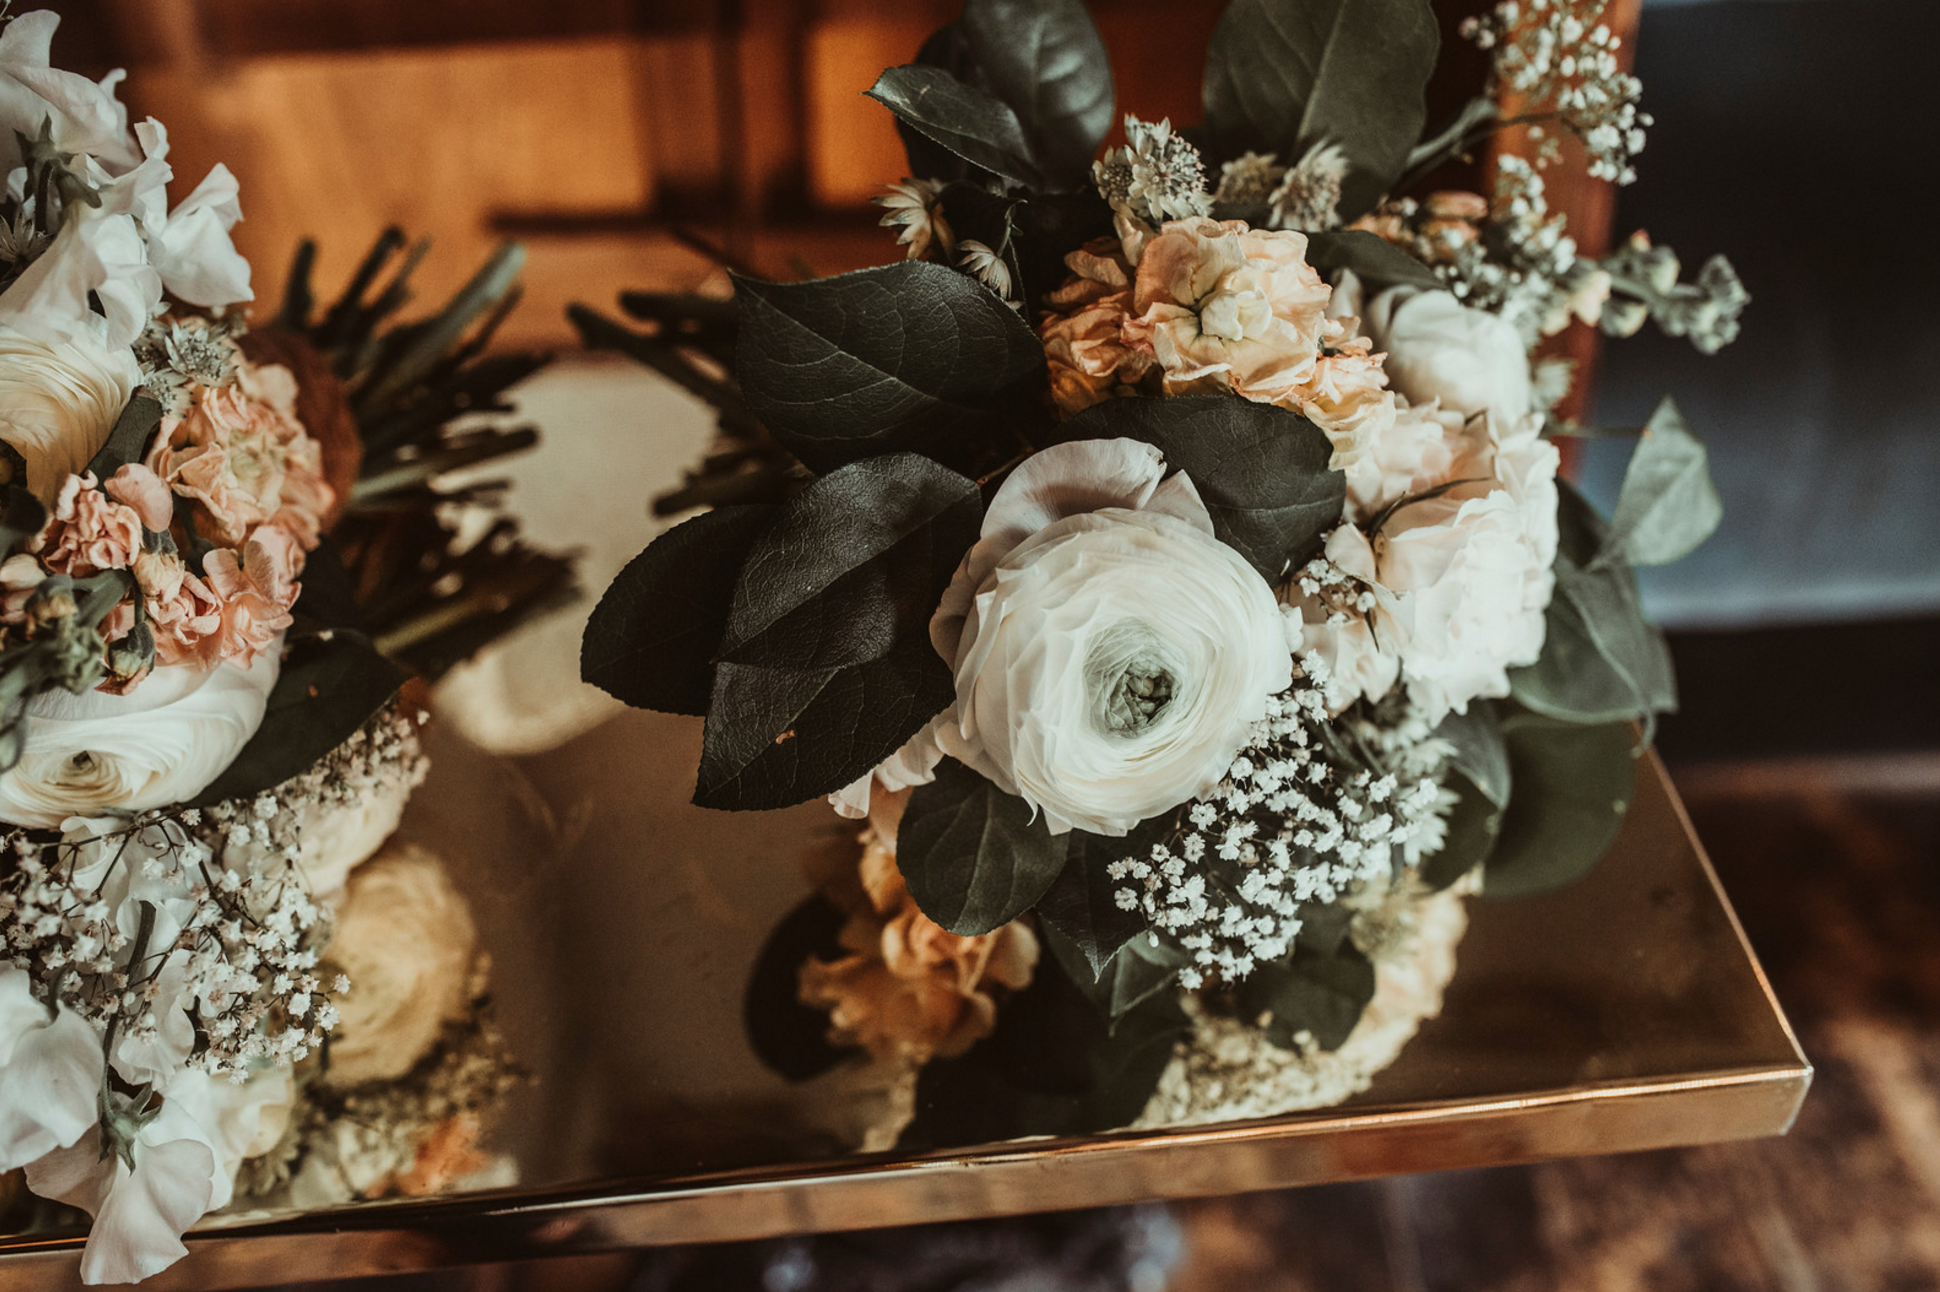 Flowers by Jenn Pinder Photo by Jess Soper Spring Wedding at Islington Union Chapel and Dead Dolls House